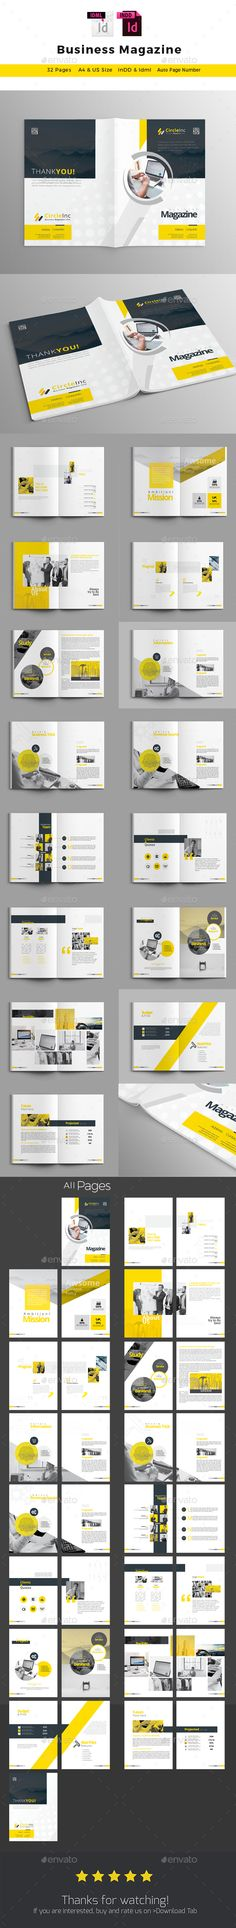 Magazine Magazines, Print templates and Template - it manual templates to download